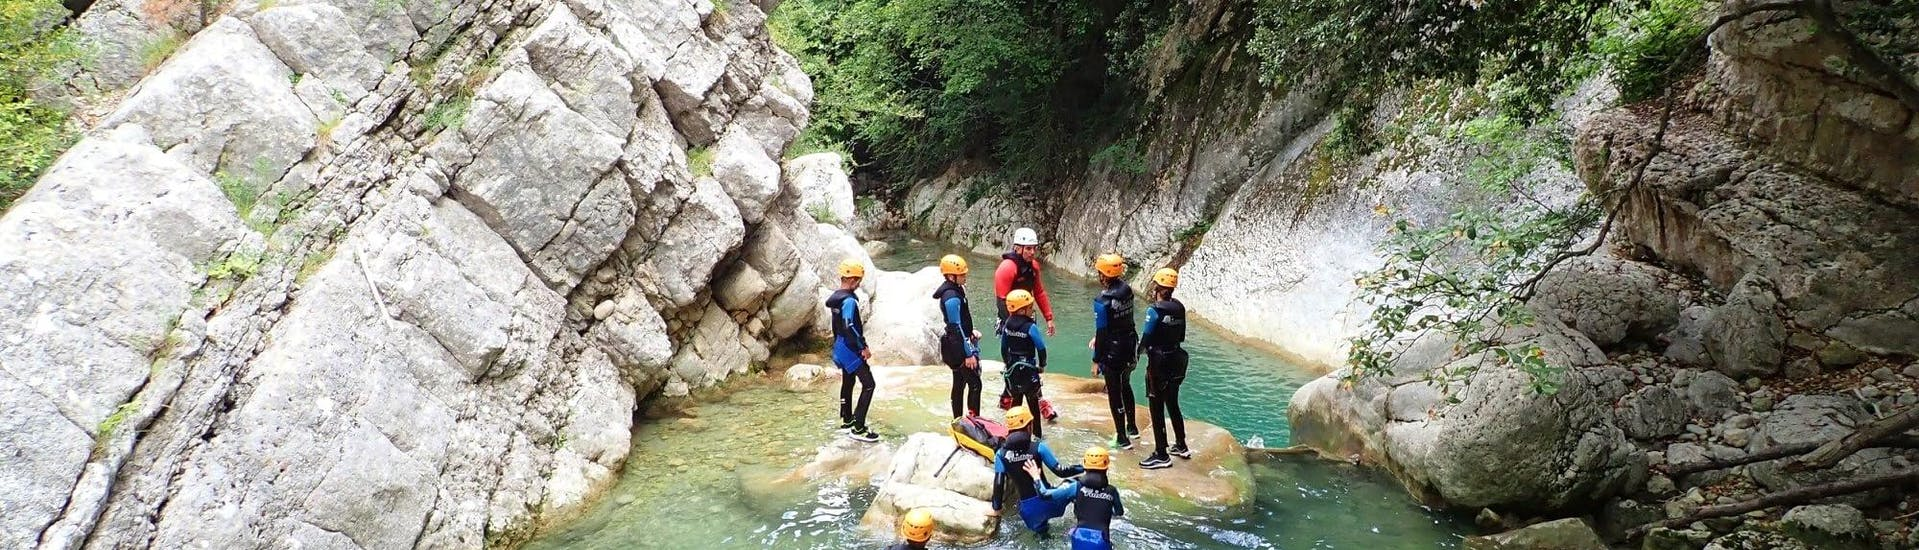 A group of children is having fun in the river during their Canyoning in the Gours du Ray Canyon - Aquatic tour with FunTrip.